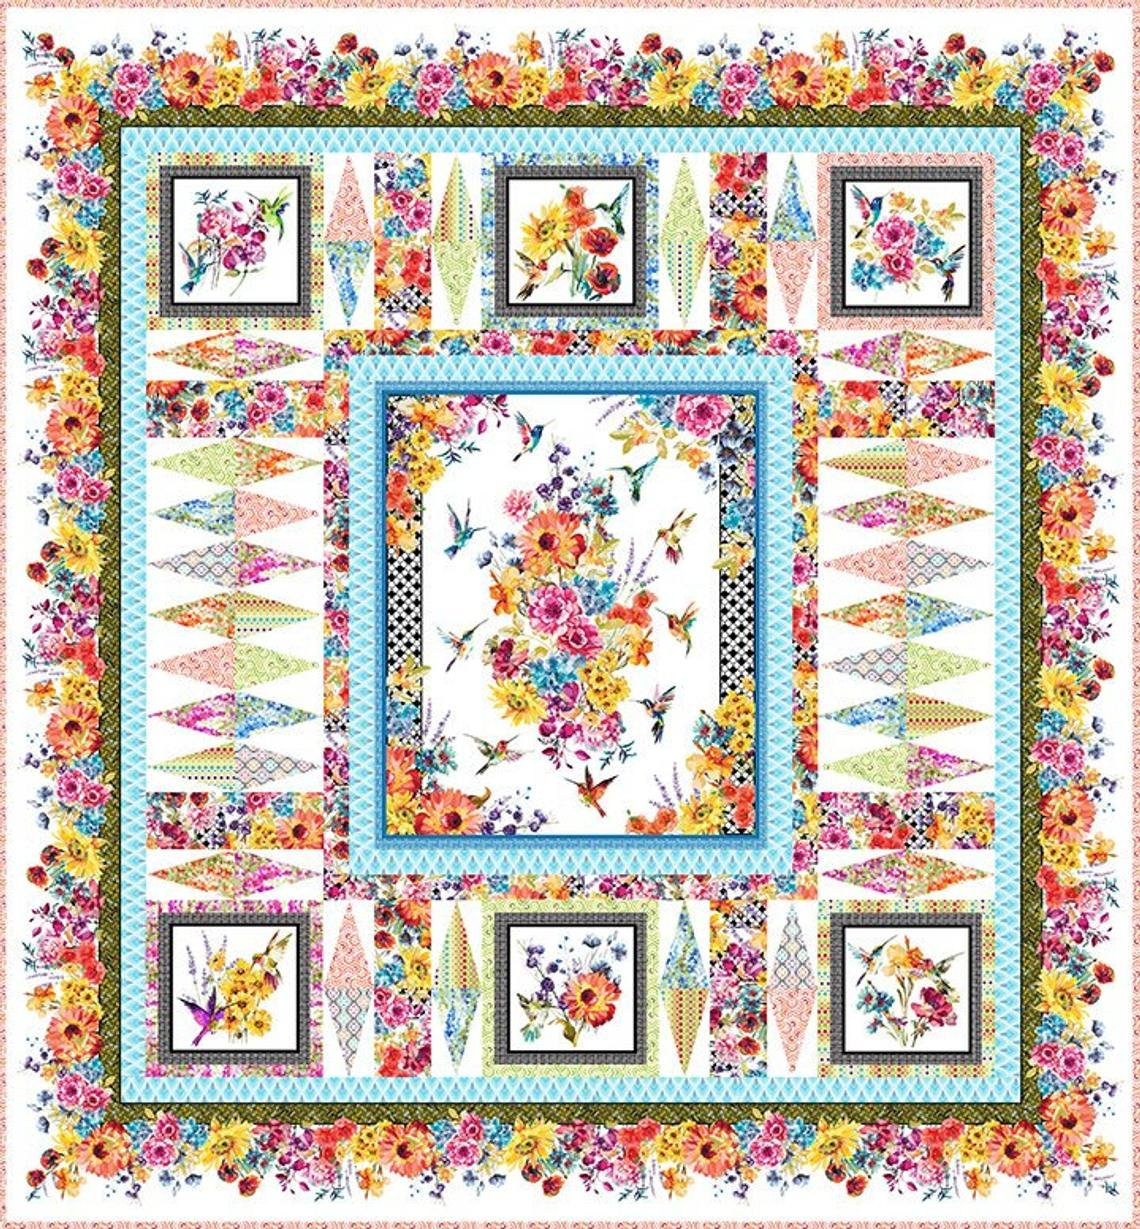 Hummingbird Lane Quilt Kit with Pattern